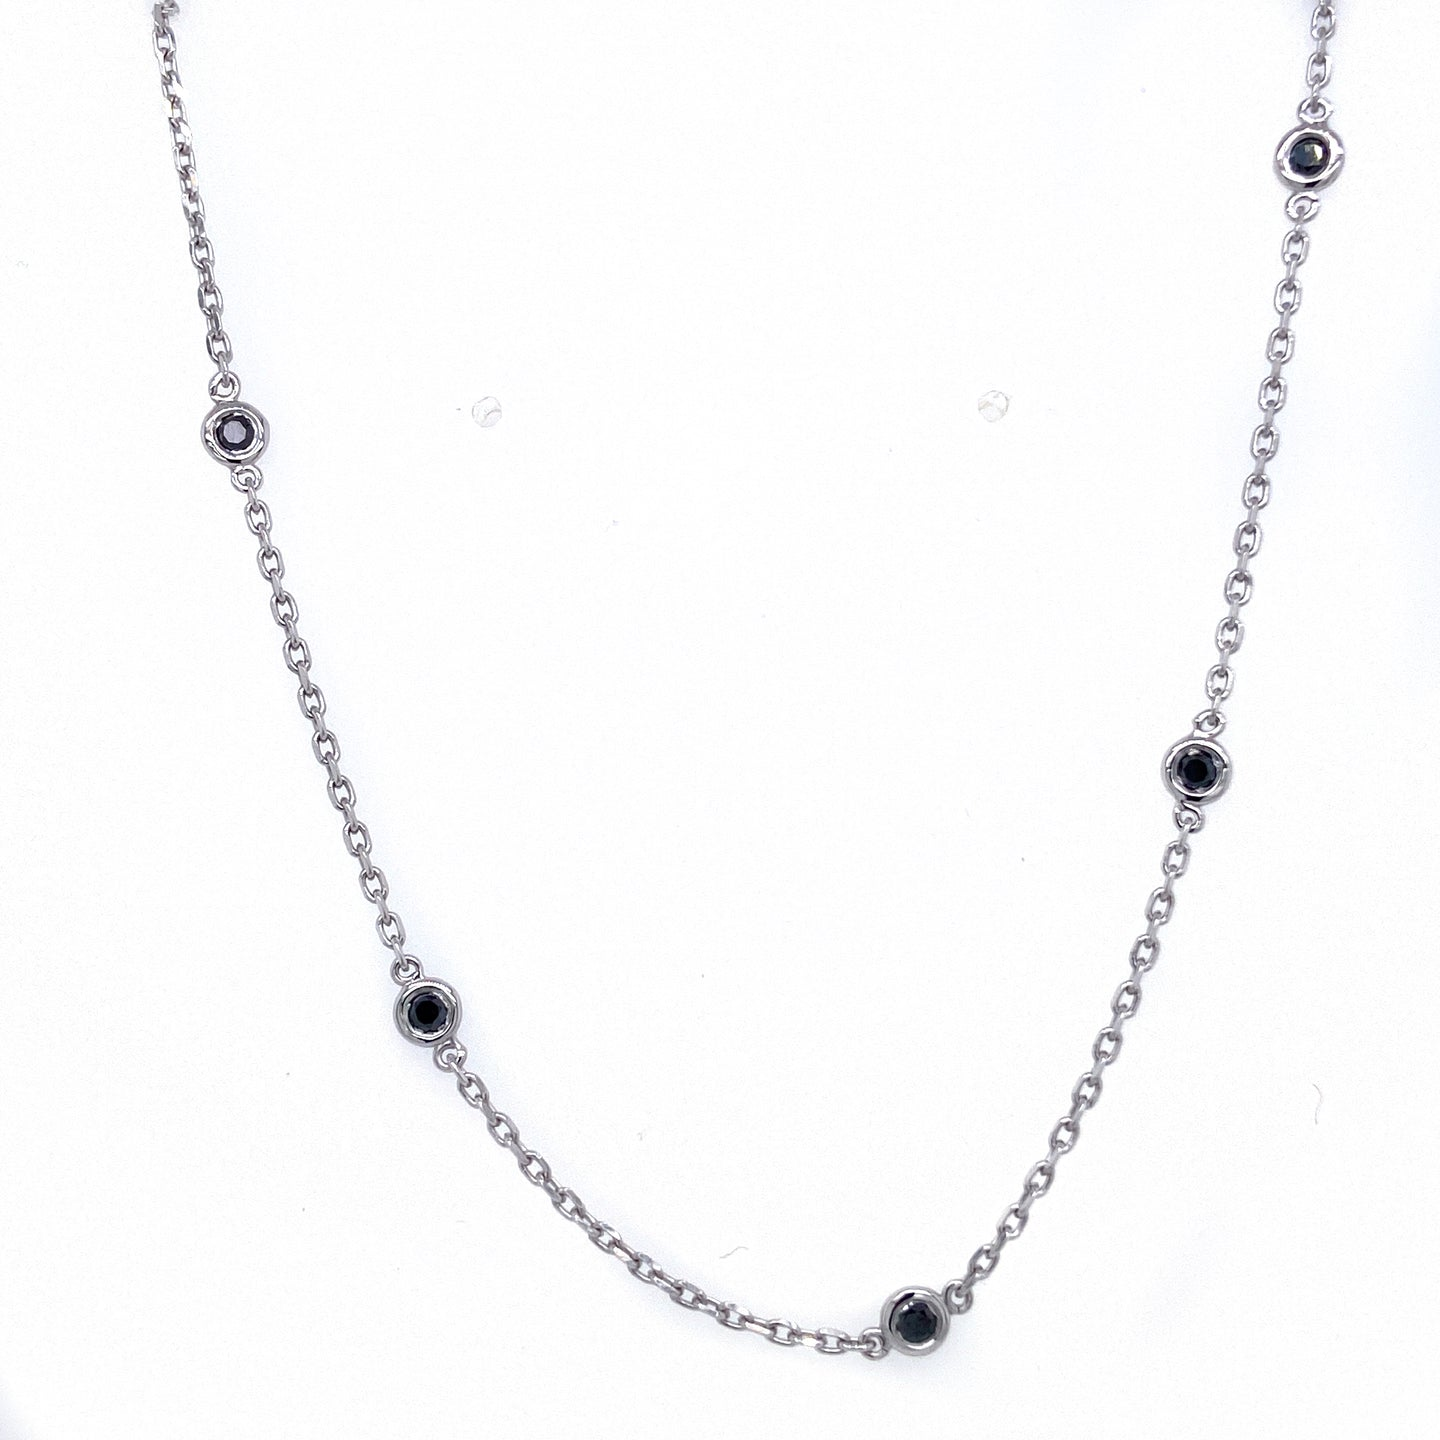 Diamonds By the Yard Necklace with Black Diamonds